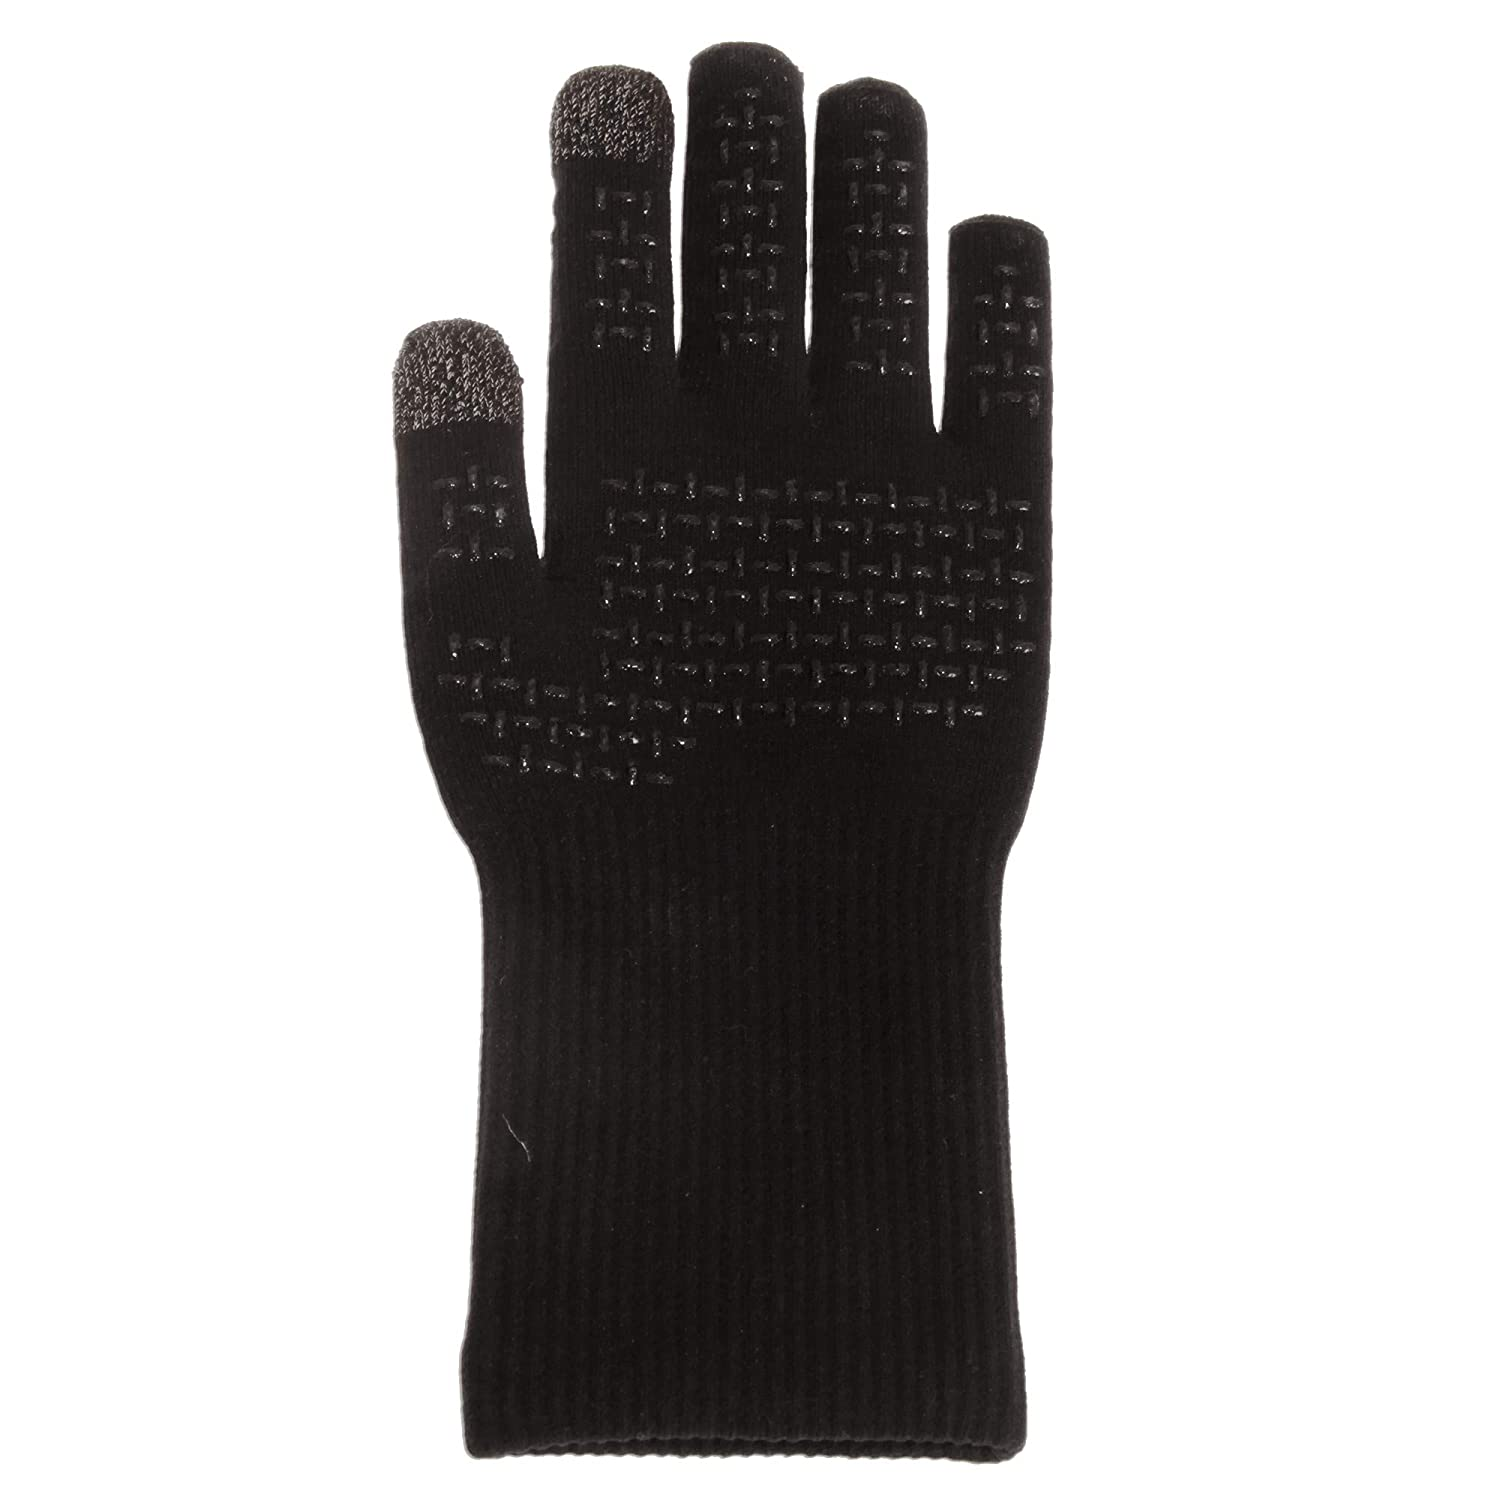 Dexshell Unisex Thermfit Neo Touch Screen Gloves